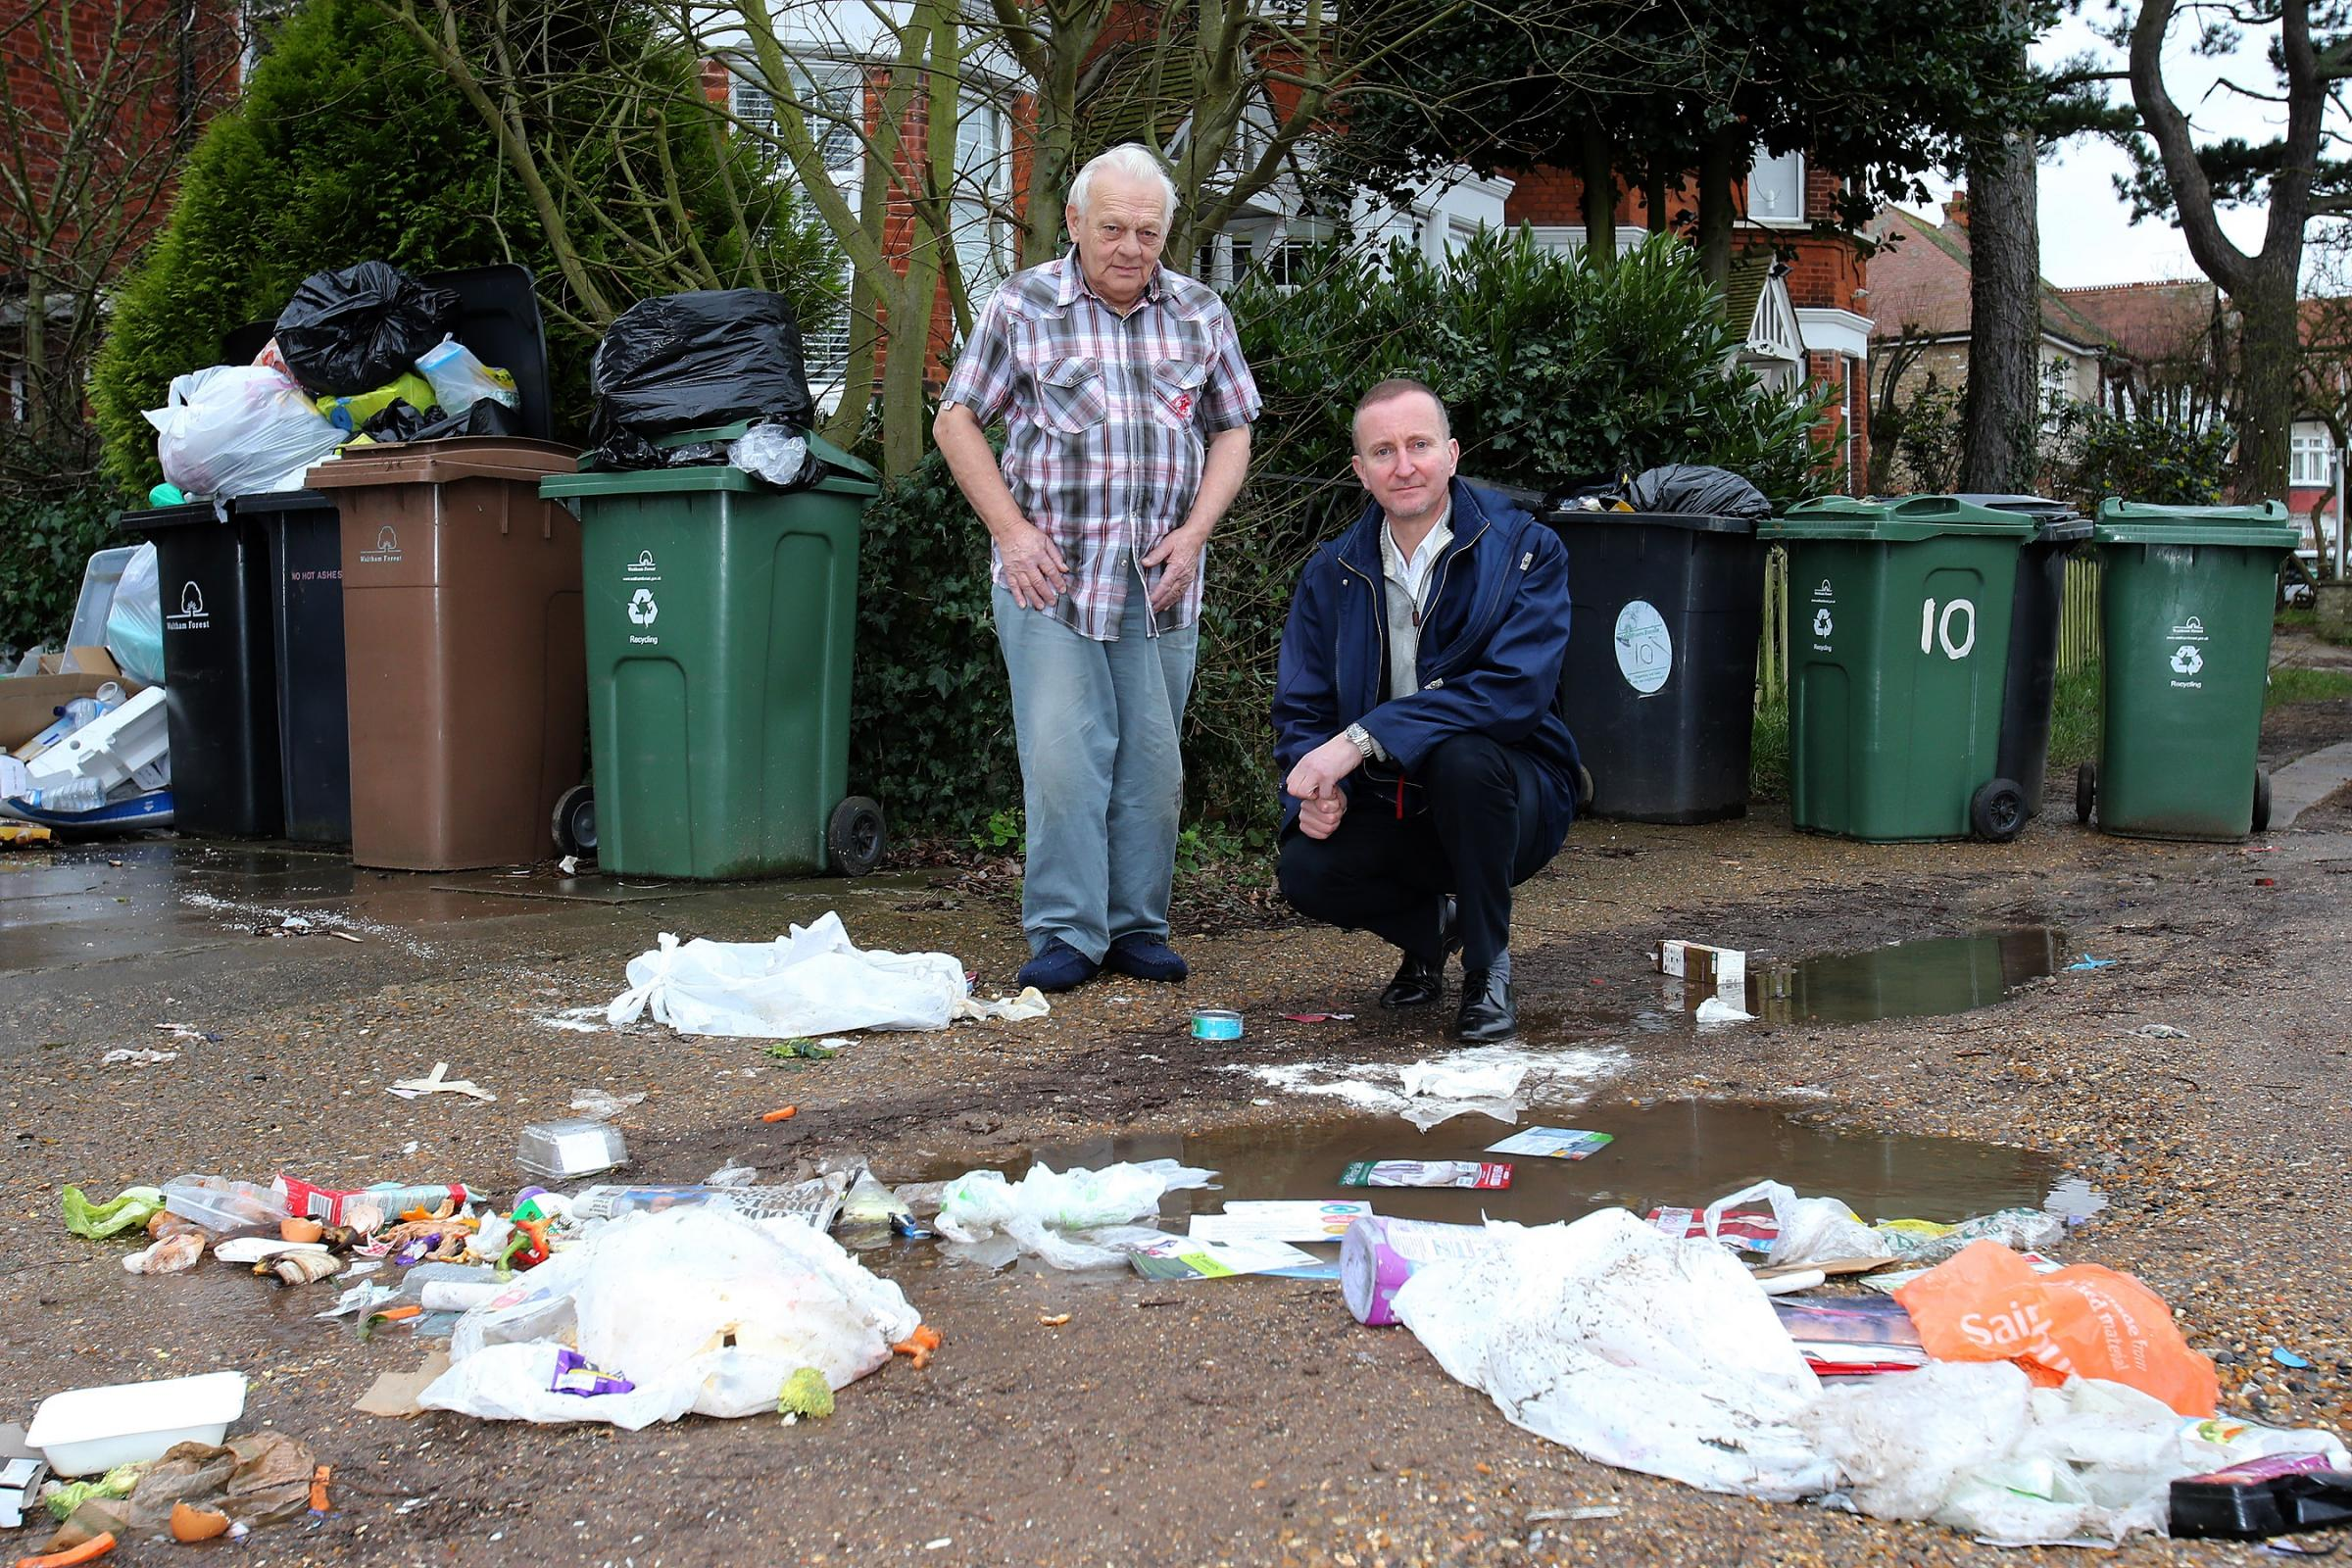 Rats move in as uncollected rubbish mounts